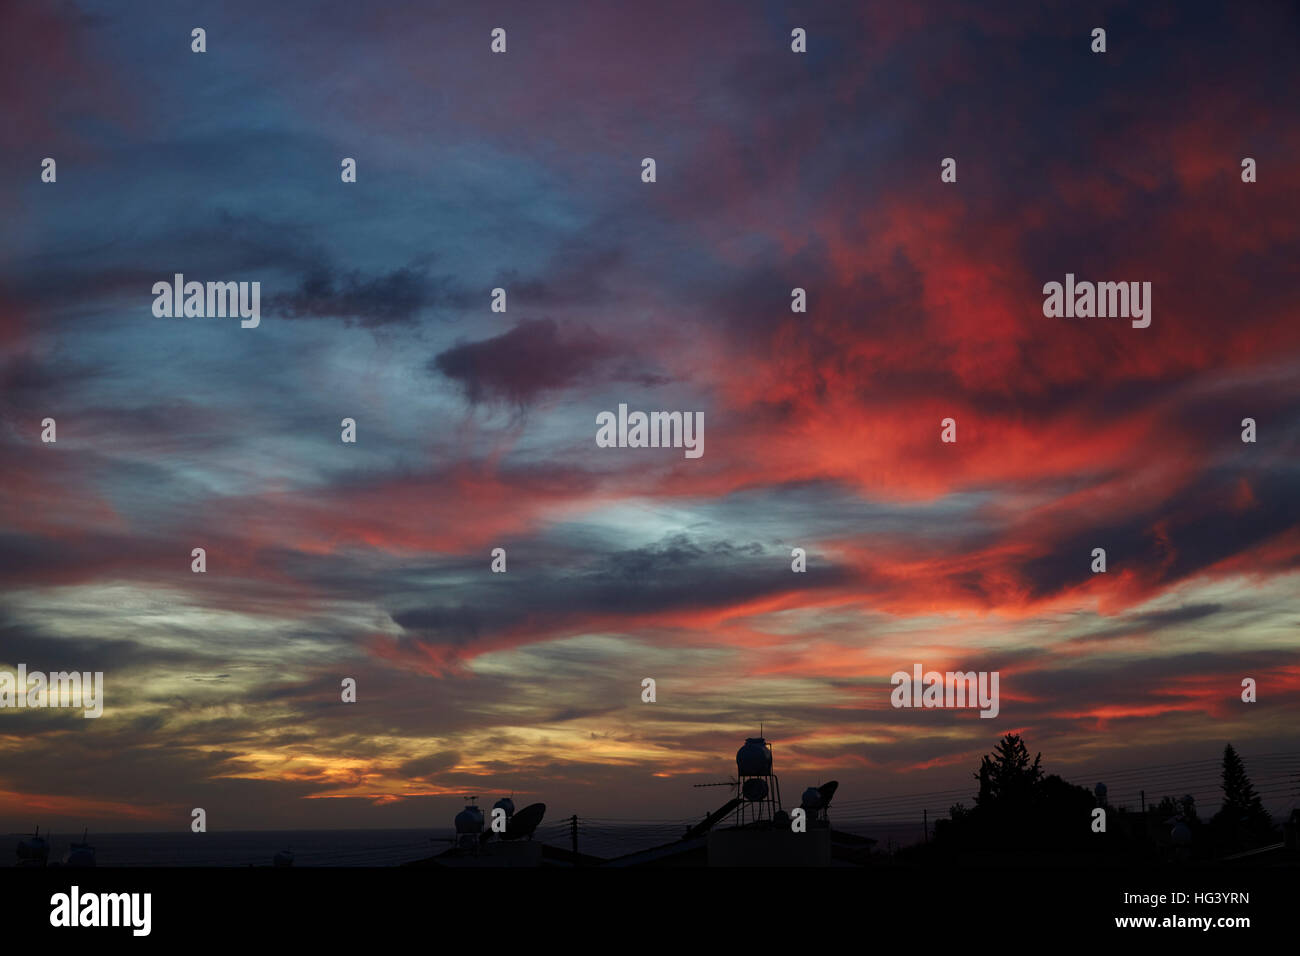 Paphos, Cyprus. Dramatic sky at sunset. - Stock Image